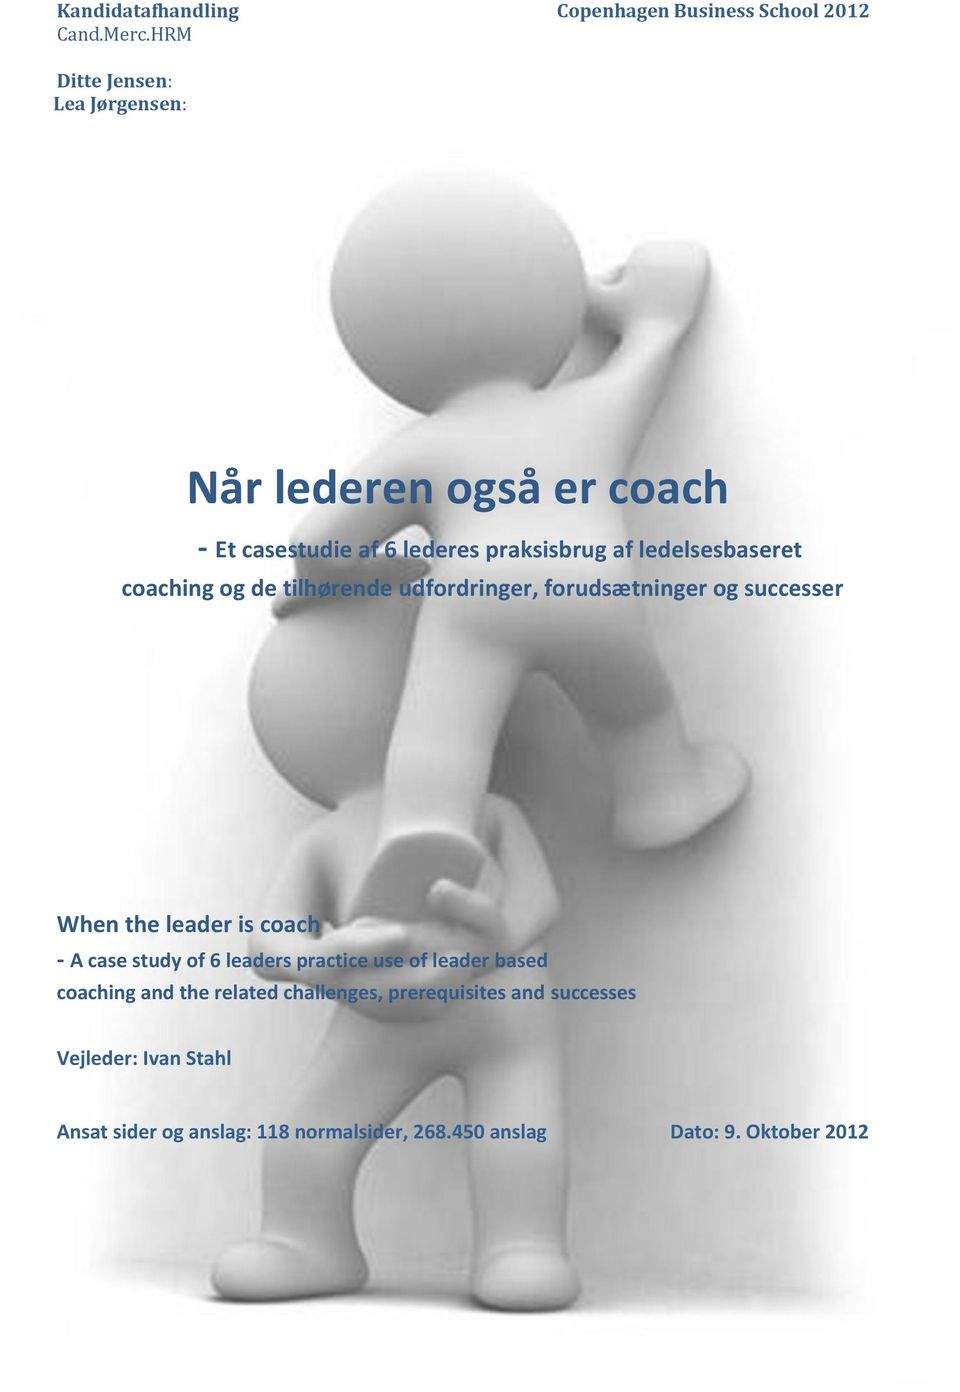 coaching og de tilhørende udfordringer, forudsætninger og successer When the leader is coach - A case study of 6 leaders